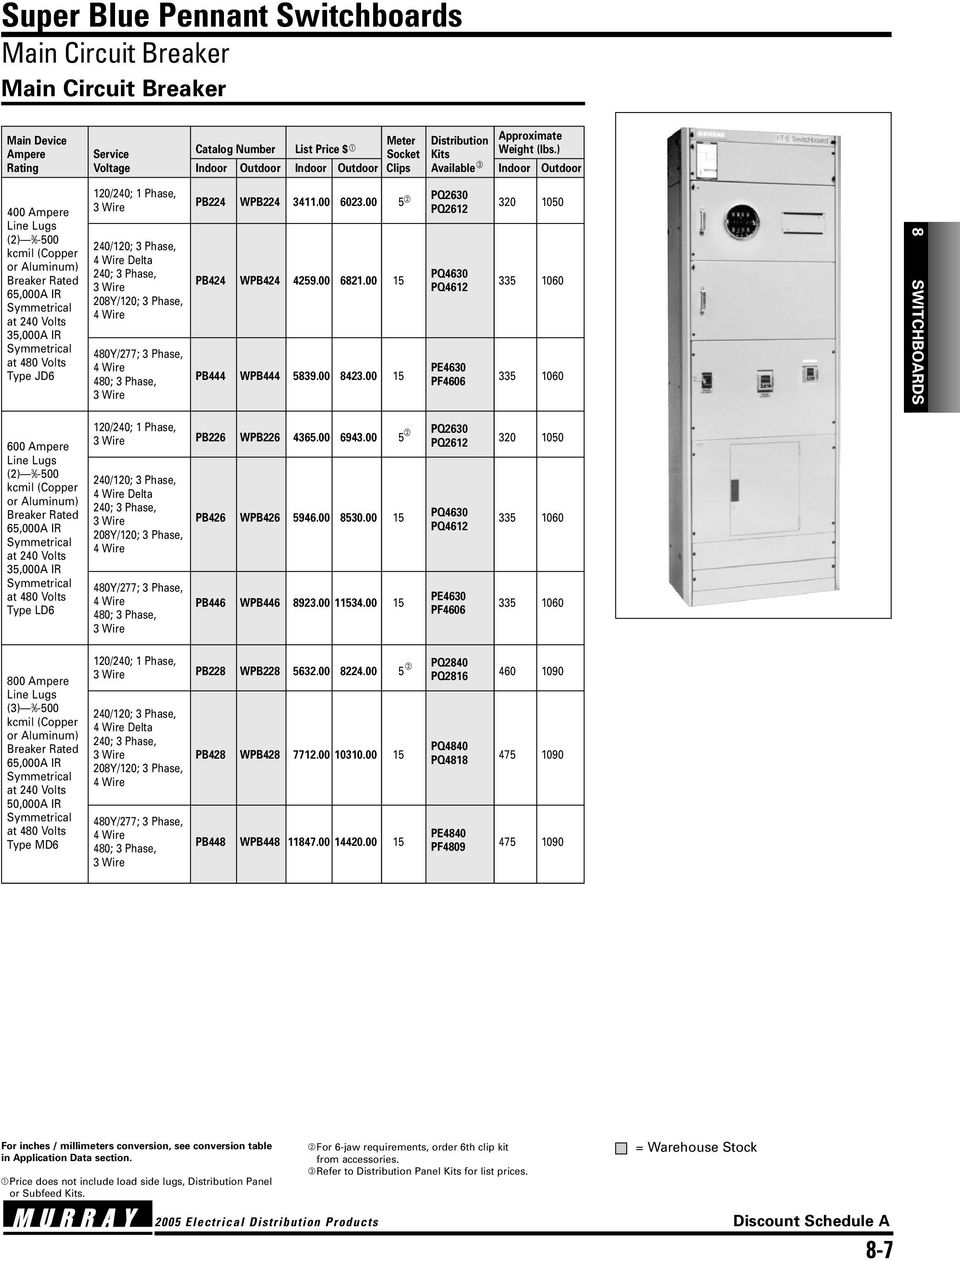 Super Blue Pennant Switchboards Warehouse Stock Pdf Wiring Diagram 3 Phase Panel 208y 120 00 5 Pq2612 Delta 240 Pq4630 Pb424 Wpb424 425900 682100 15 Pe4630